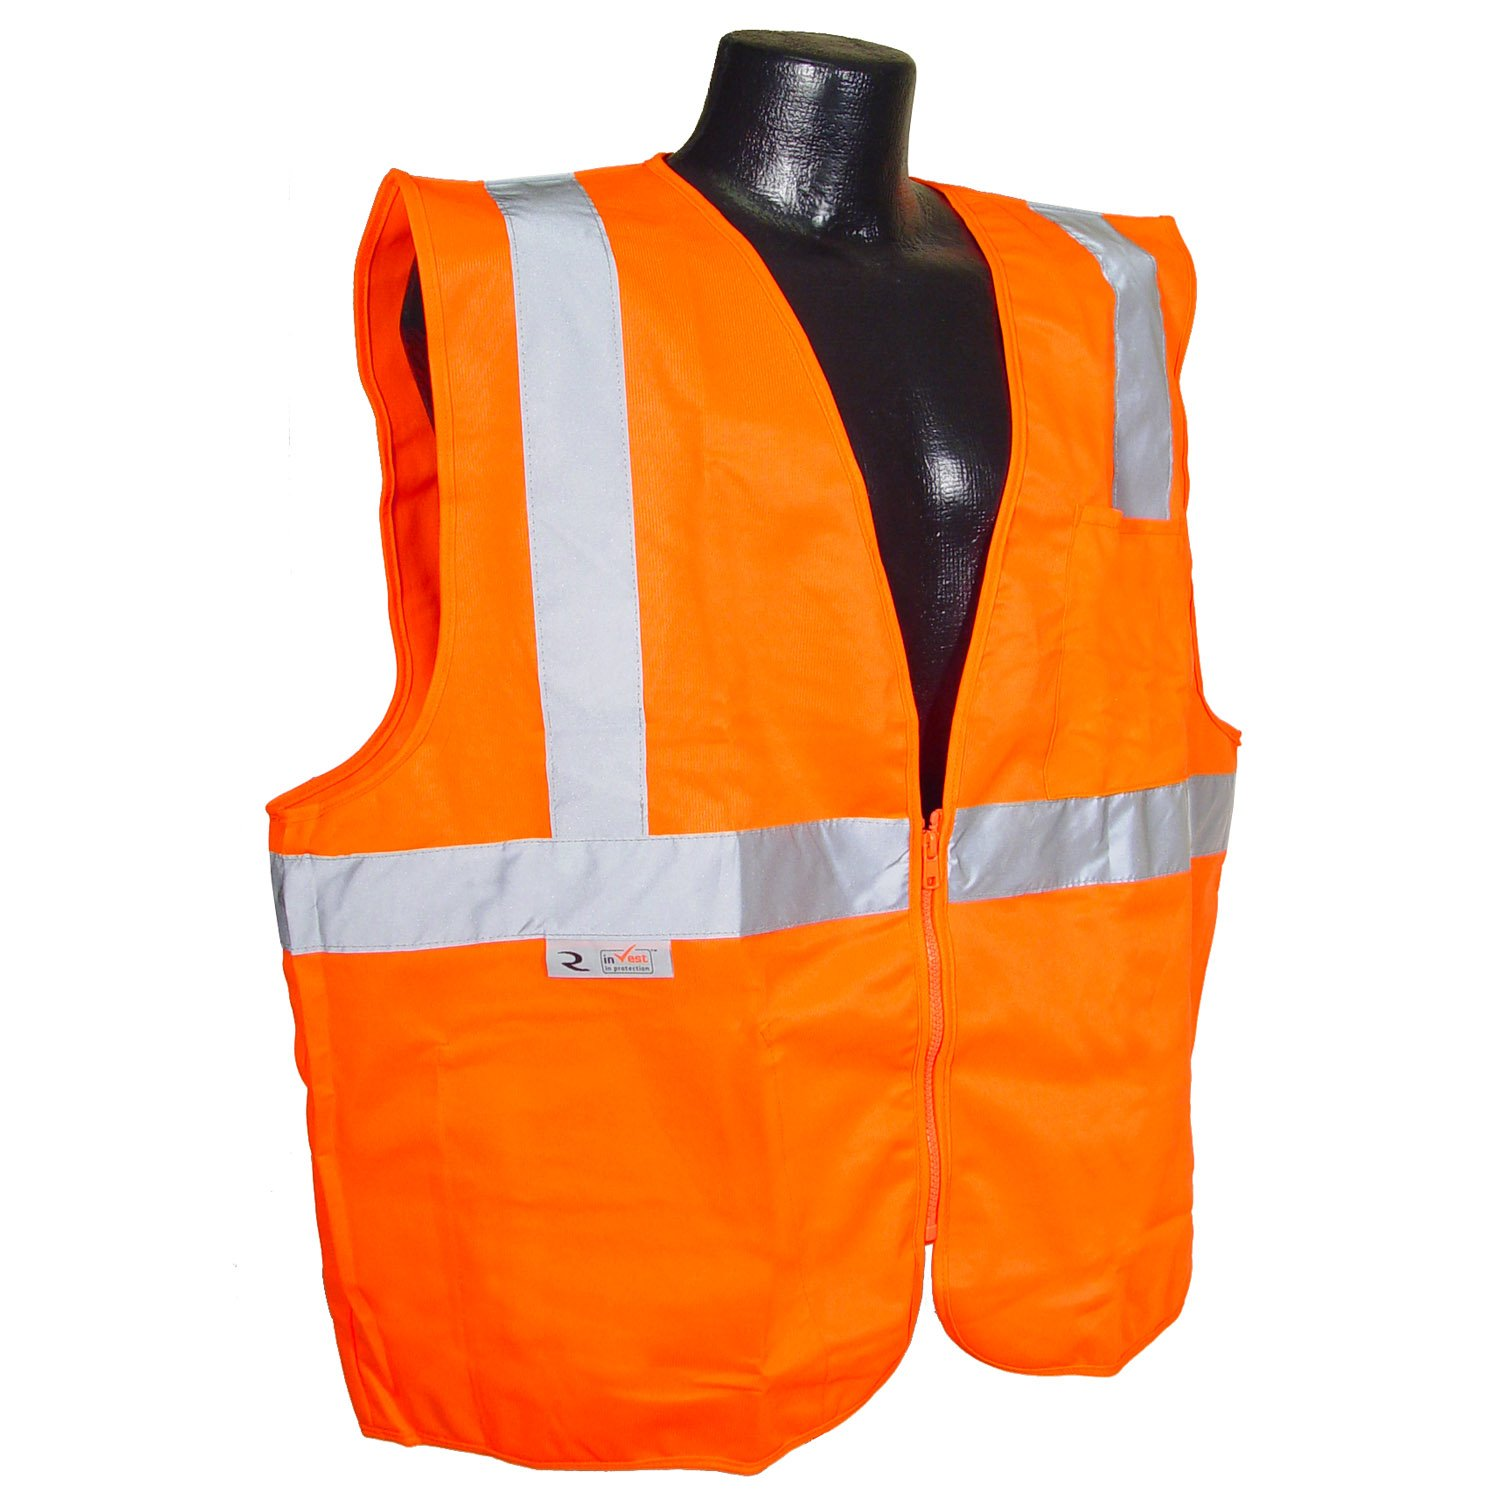 Large Orange Radians SV2ZOSL Polyester Solid Knit Economy Class 2 High Visibility Vest with Zipper Closure